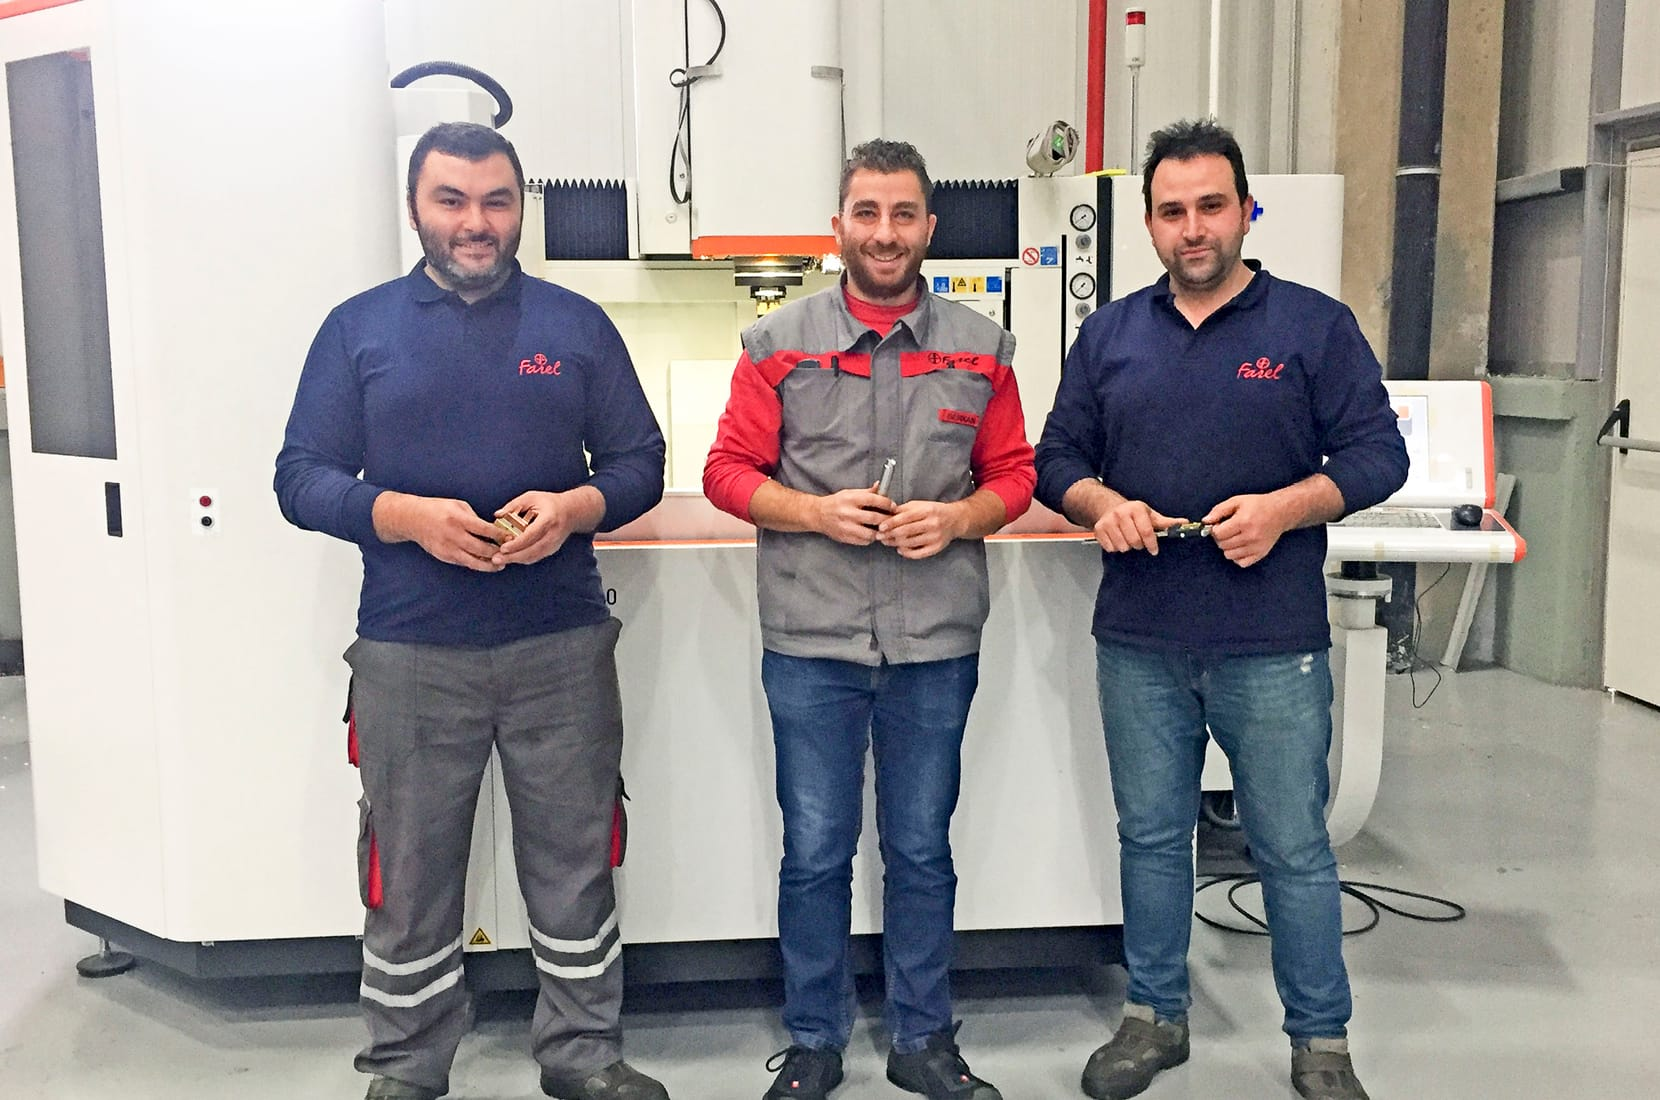 Toolmaking team colleagues at Farel